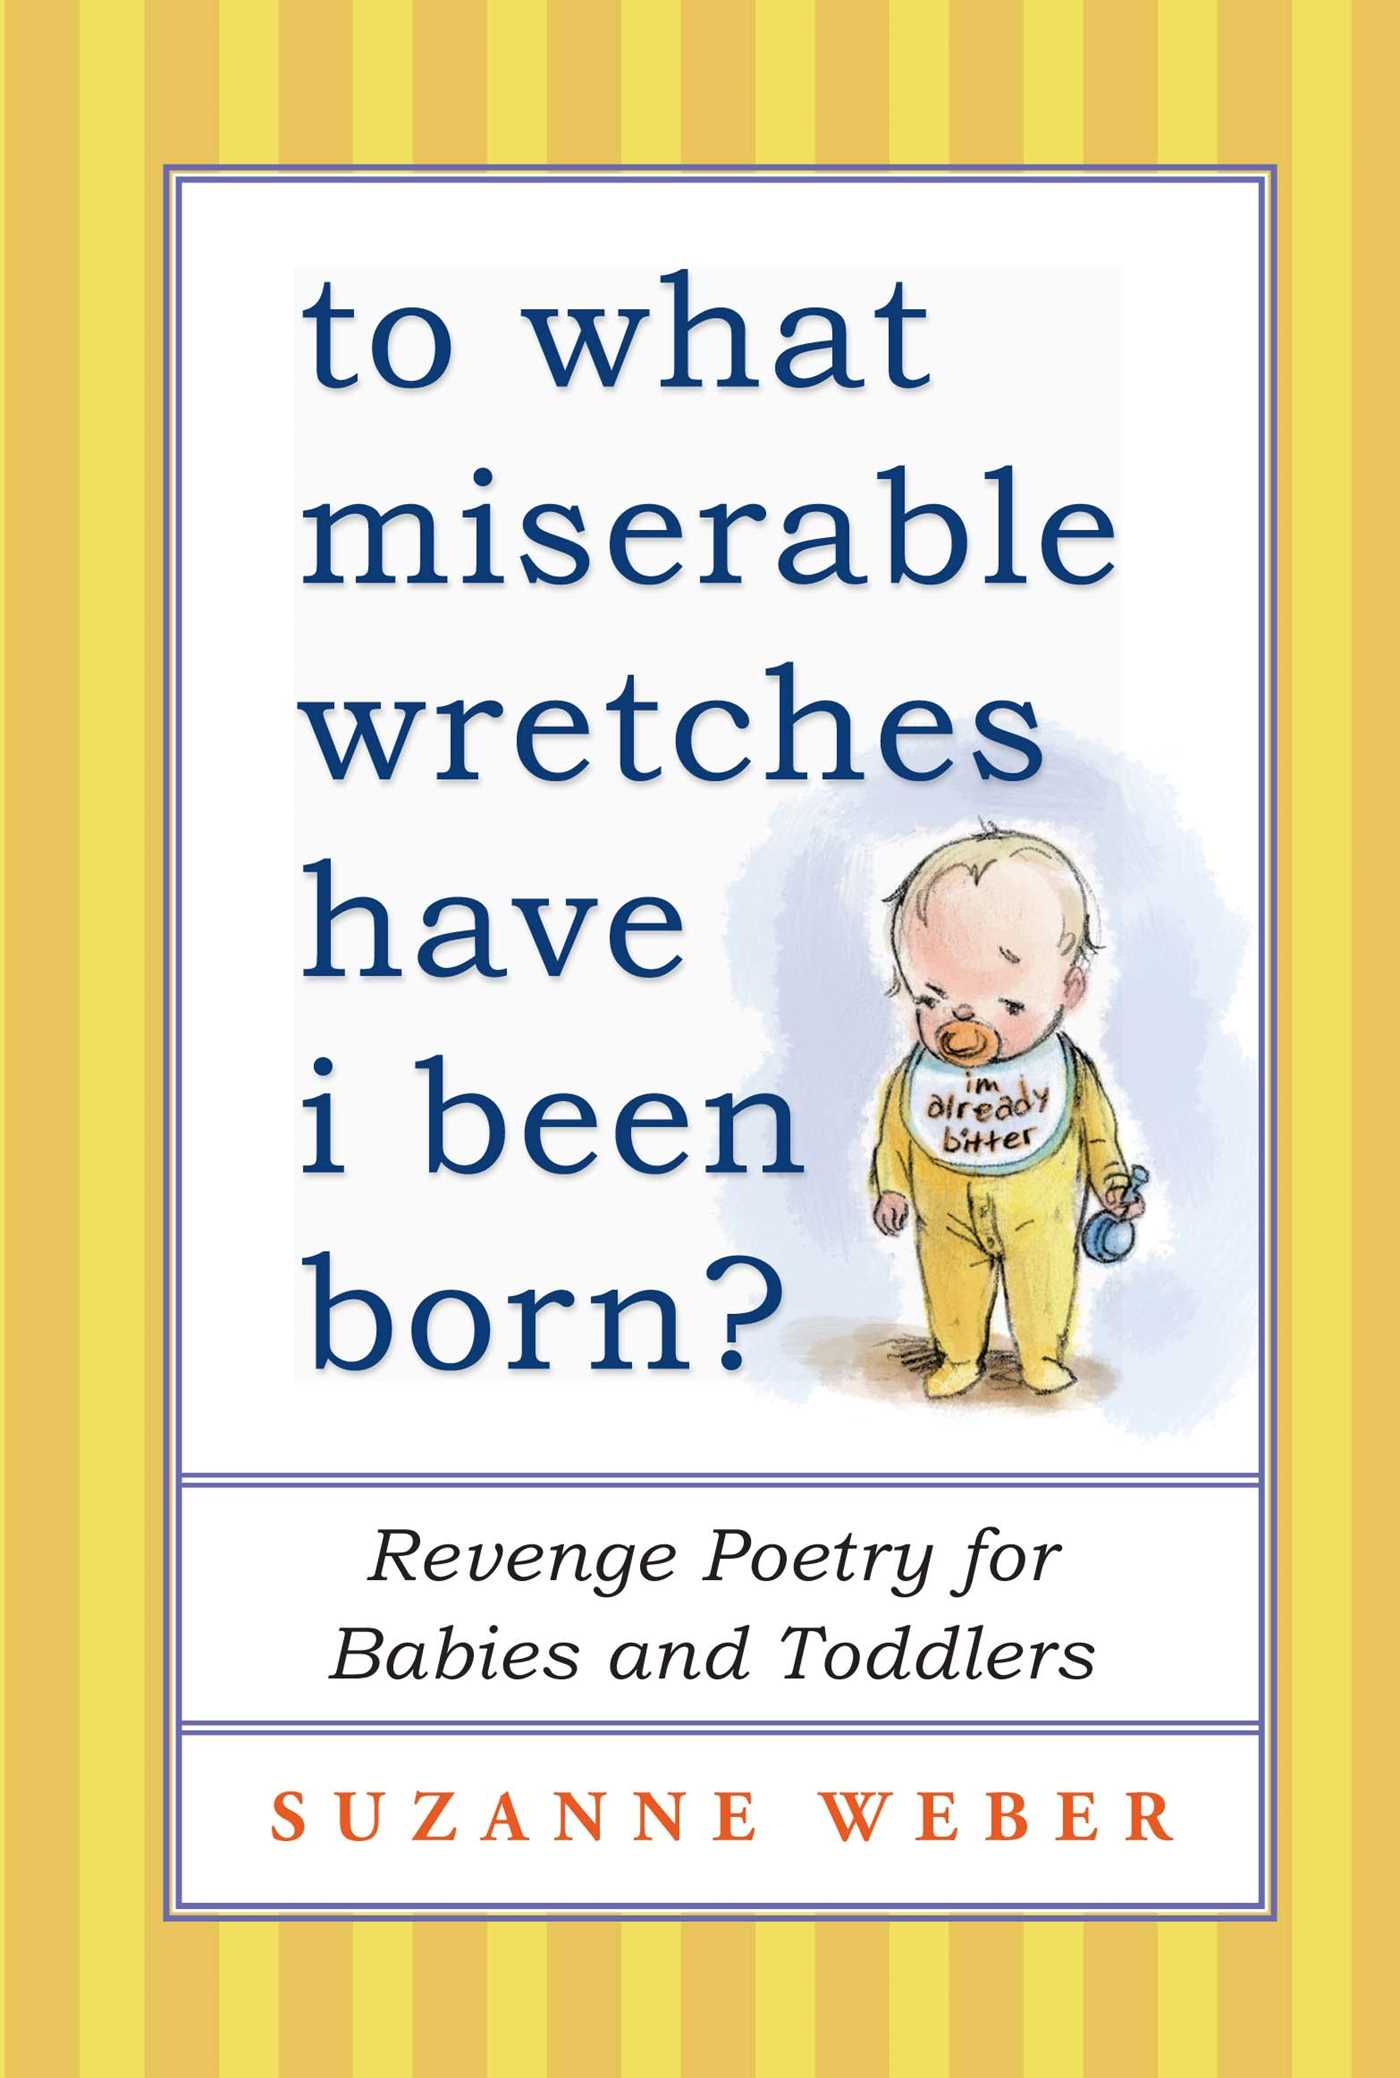 To-what-miserable-wretches-have-i-been-born-9781451660678_hr